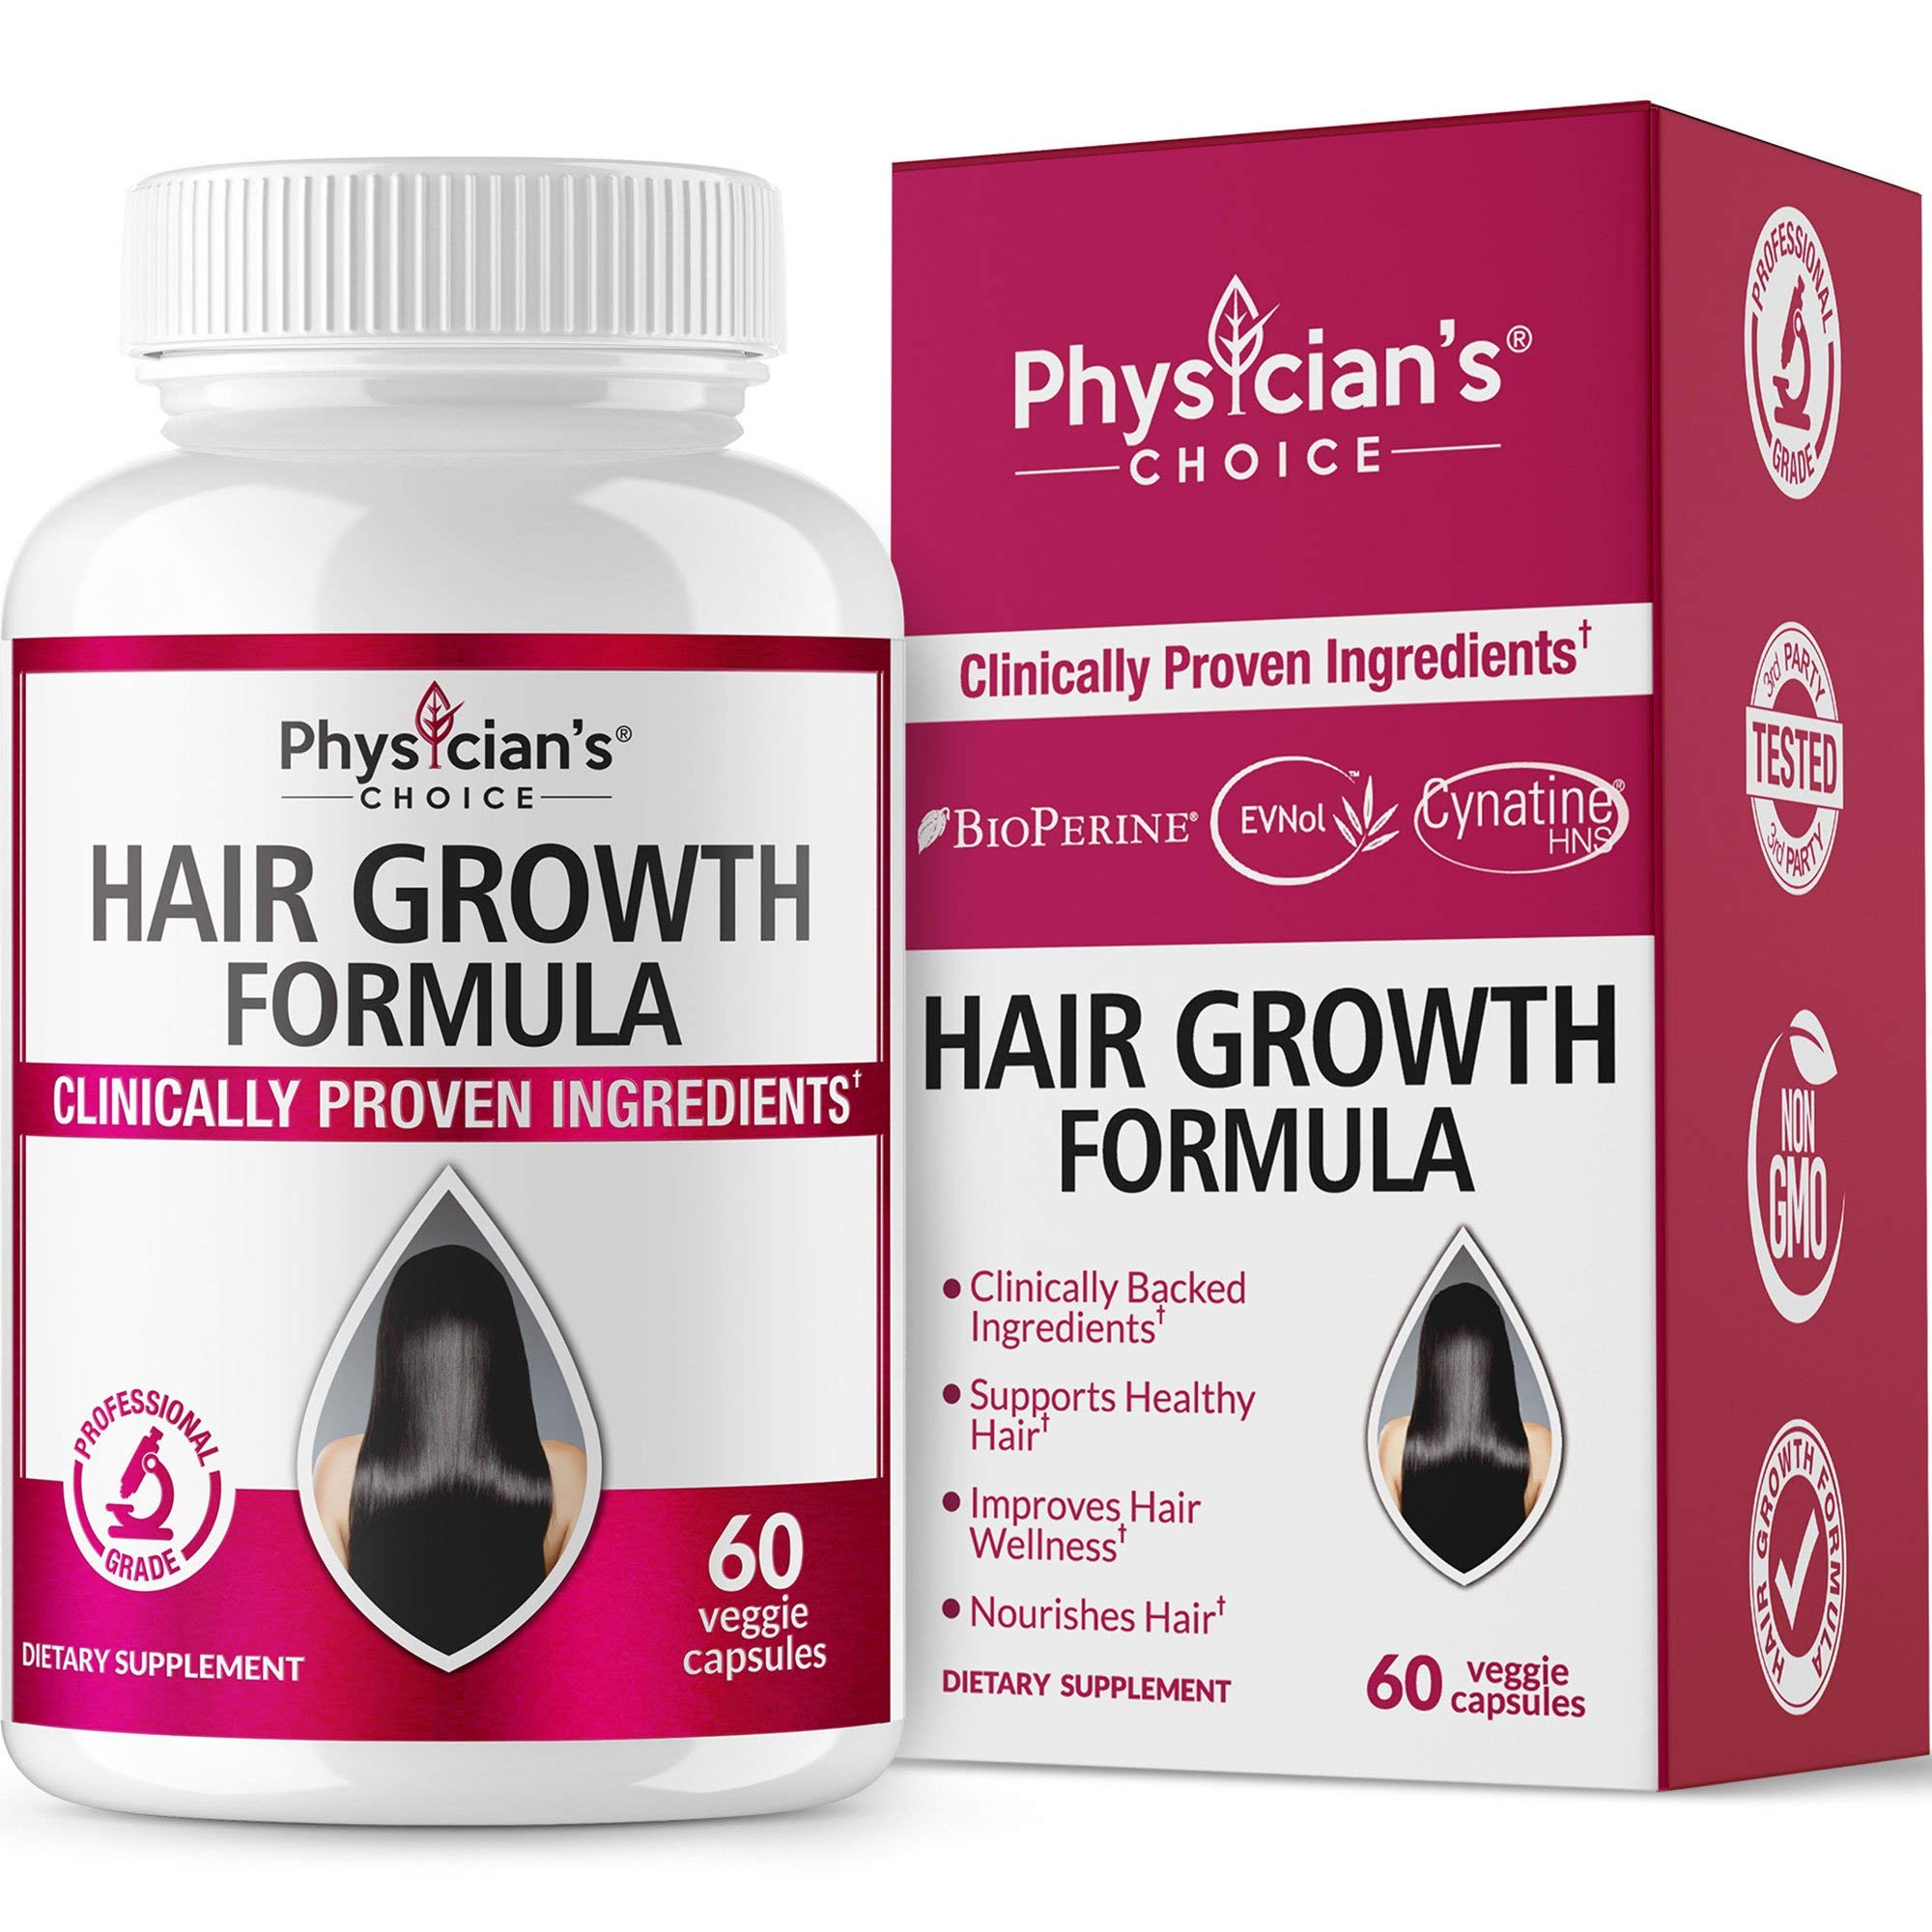 Hair Growth Vitamins (Clinically Proven Ingredients) Award Winning Keratin, Biotin and More, Proven Hair Vitamins for Faster Healthier Hair Growth - Hair Loss & Thinning Supplement for Women & Men by Physician's CHOICE